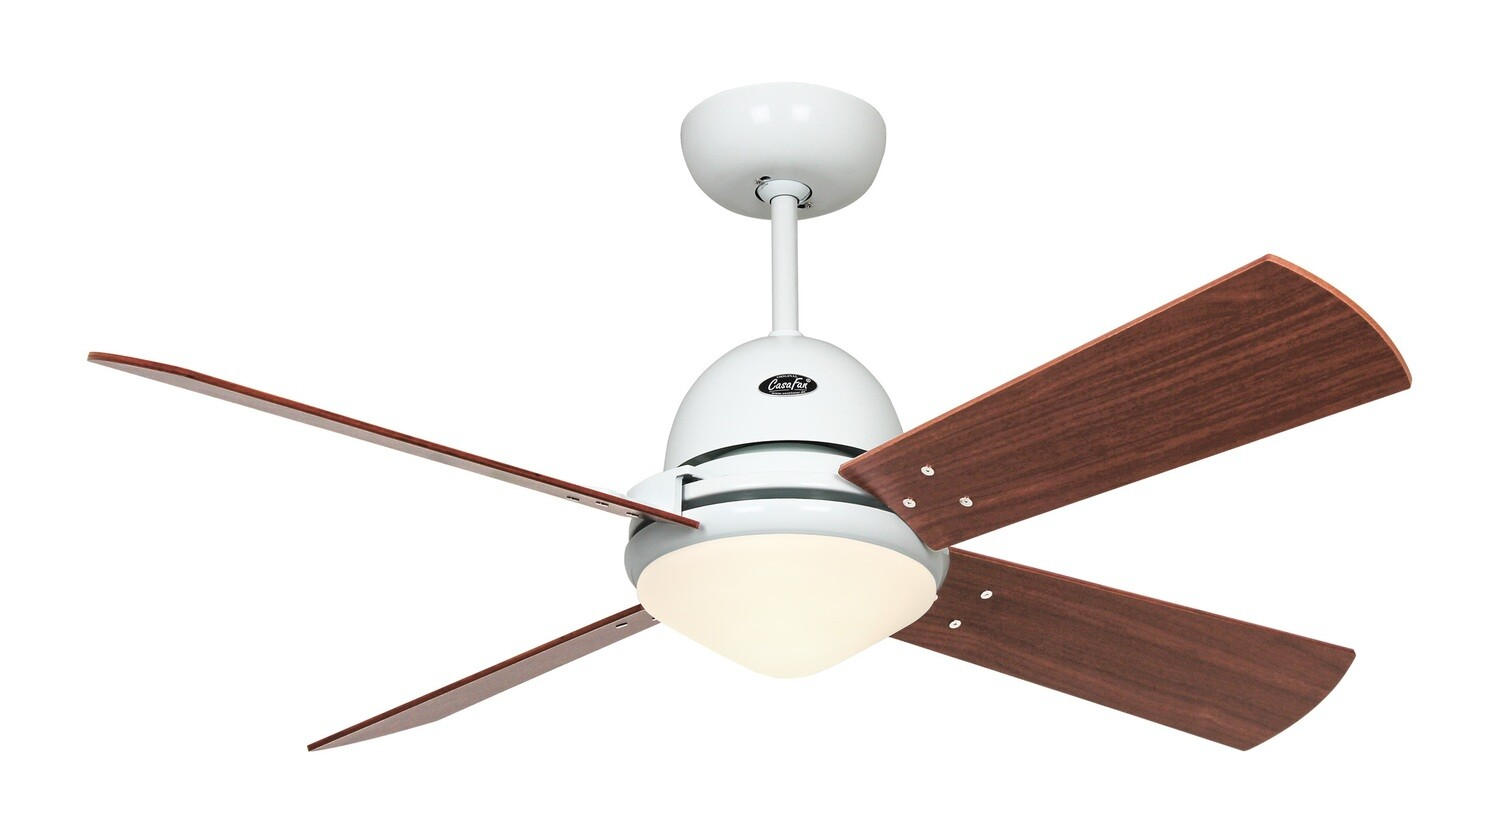 LIBECCIO ceiling fan by CASAFAN Ø120/142 with light kit and remote control included - white base with interchangeable blades